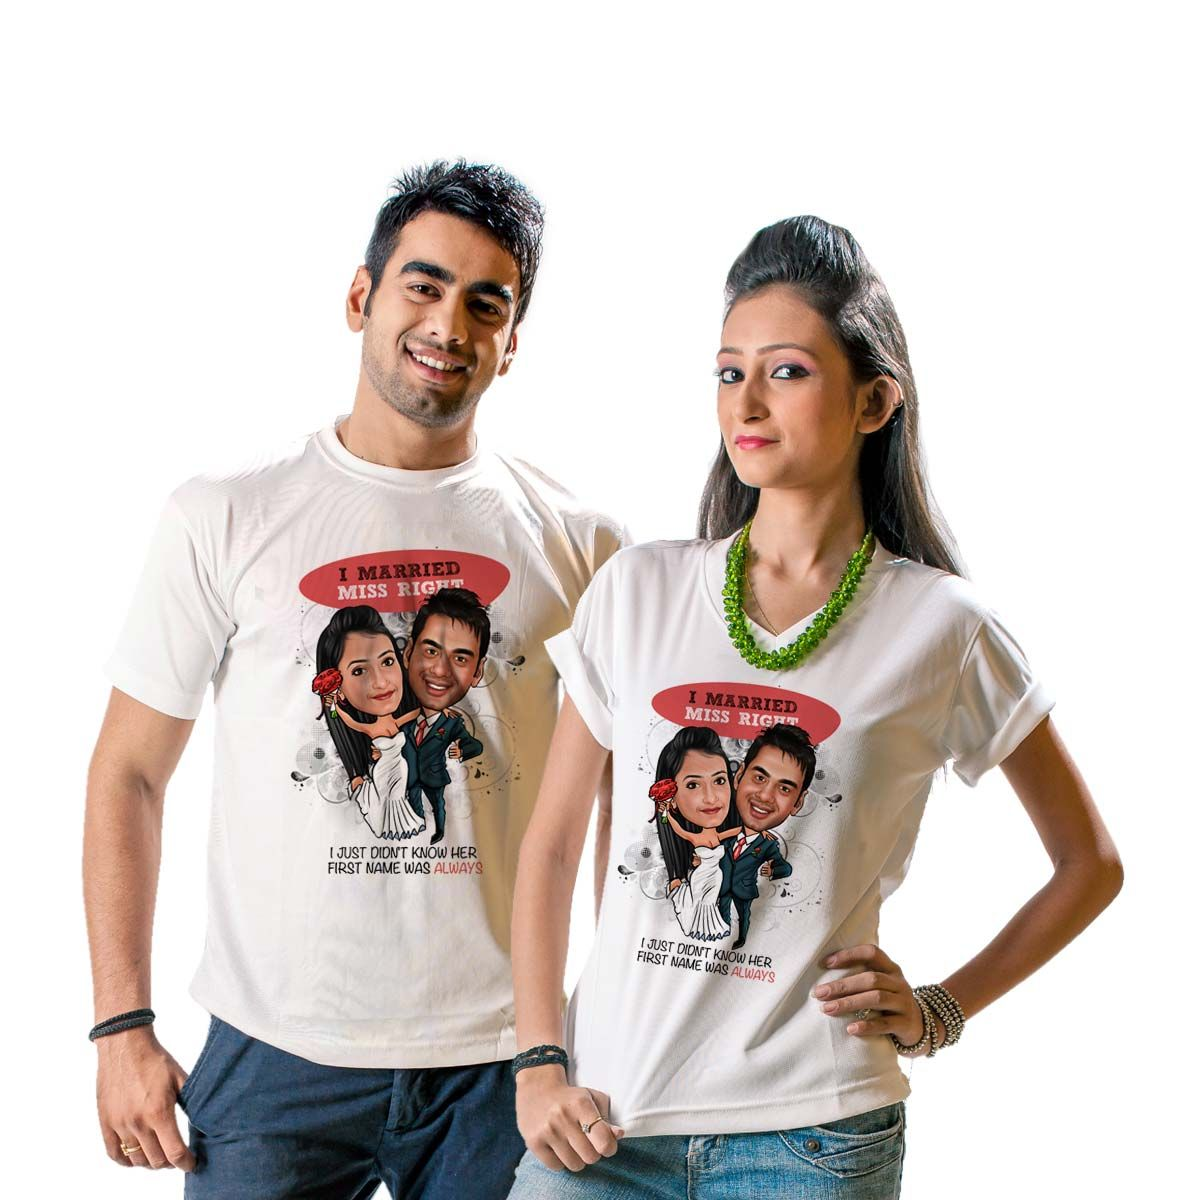 Personalized t shirts deepak florist for Couple printed t shirts india